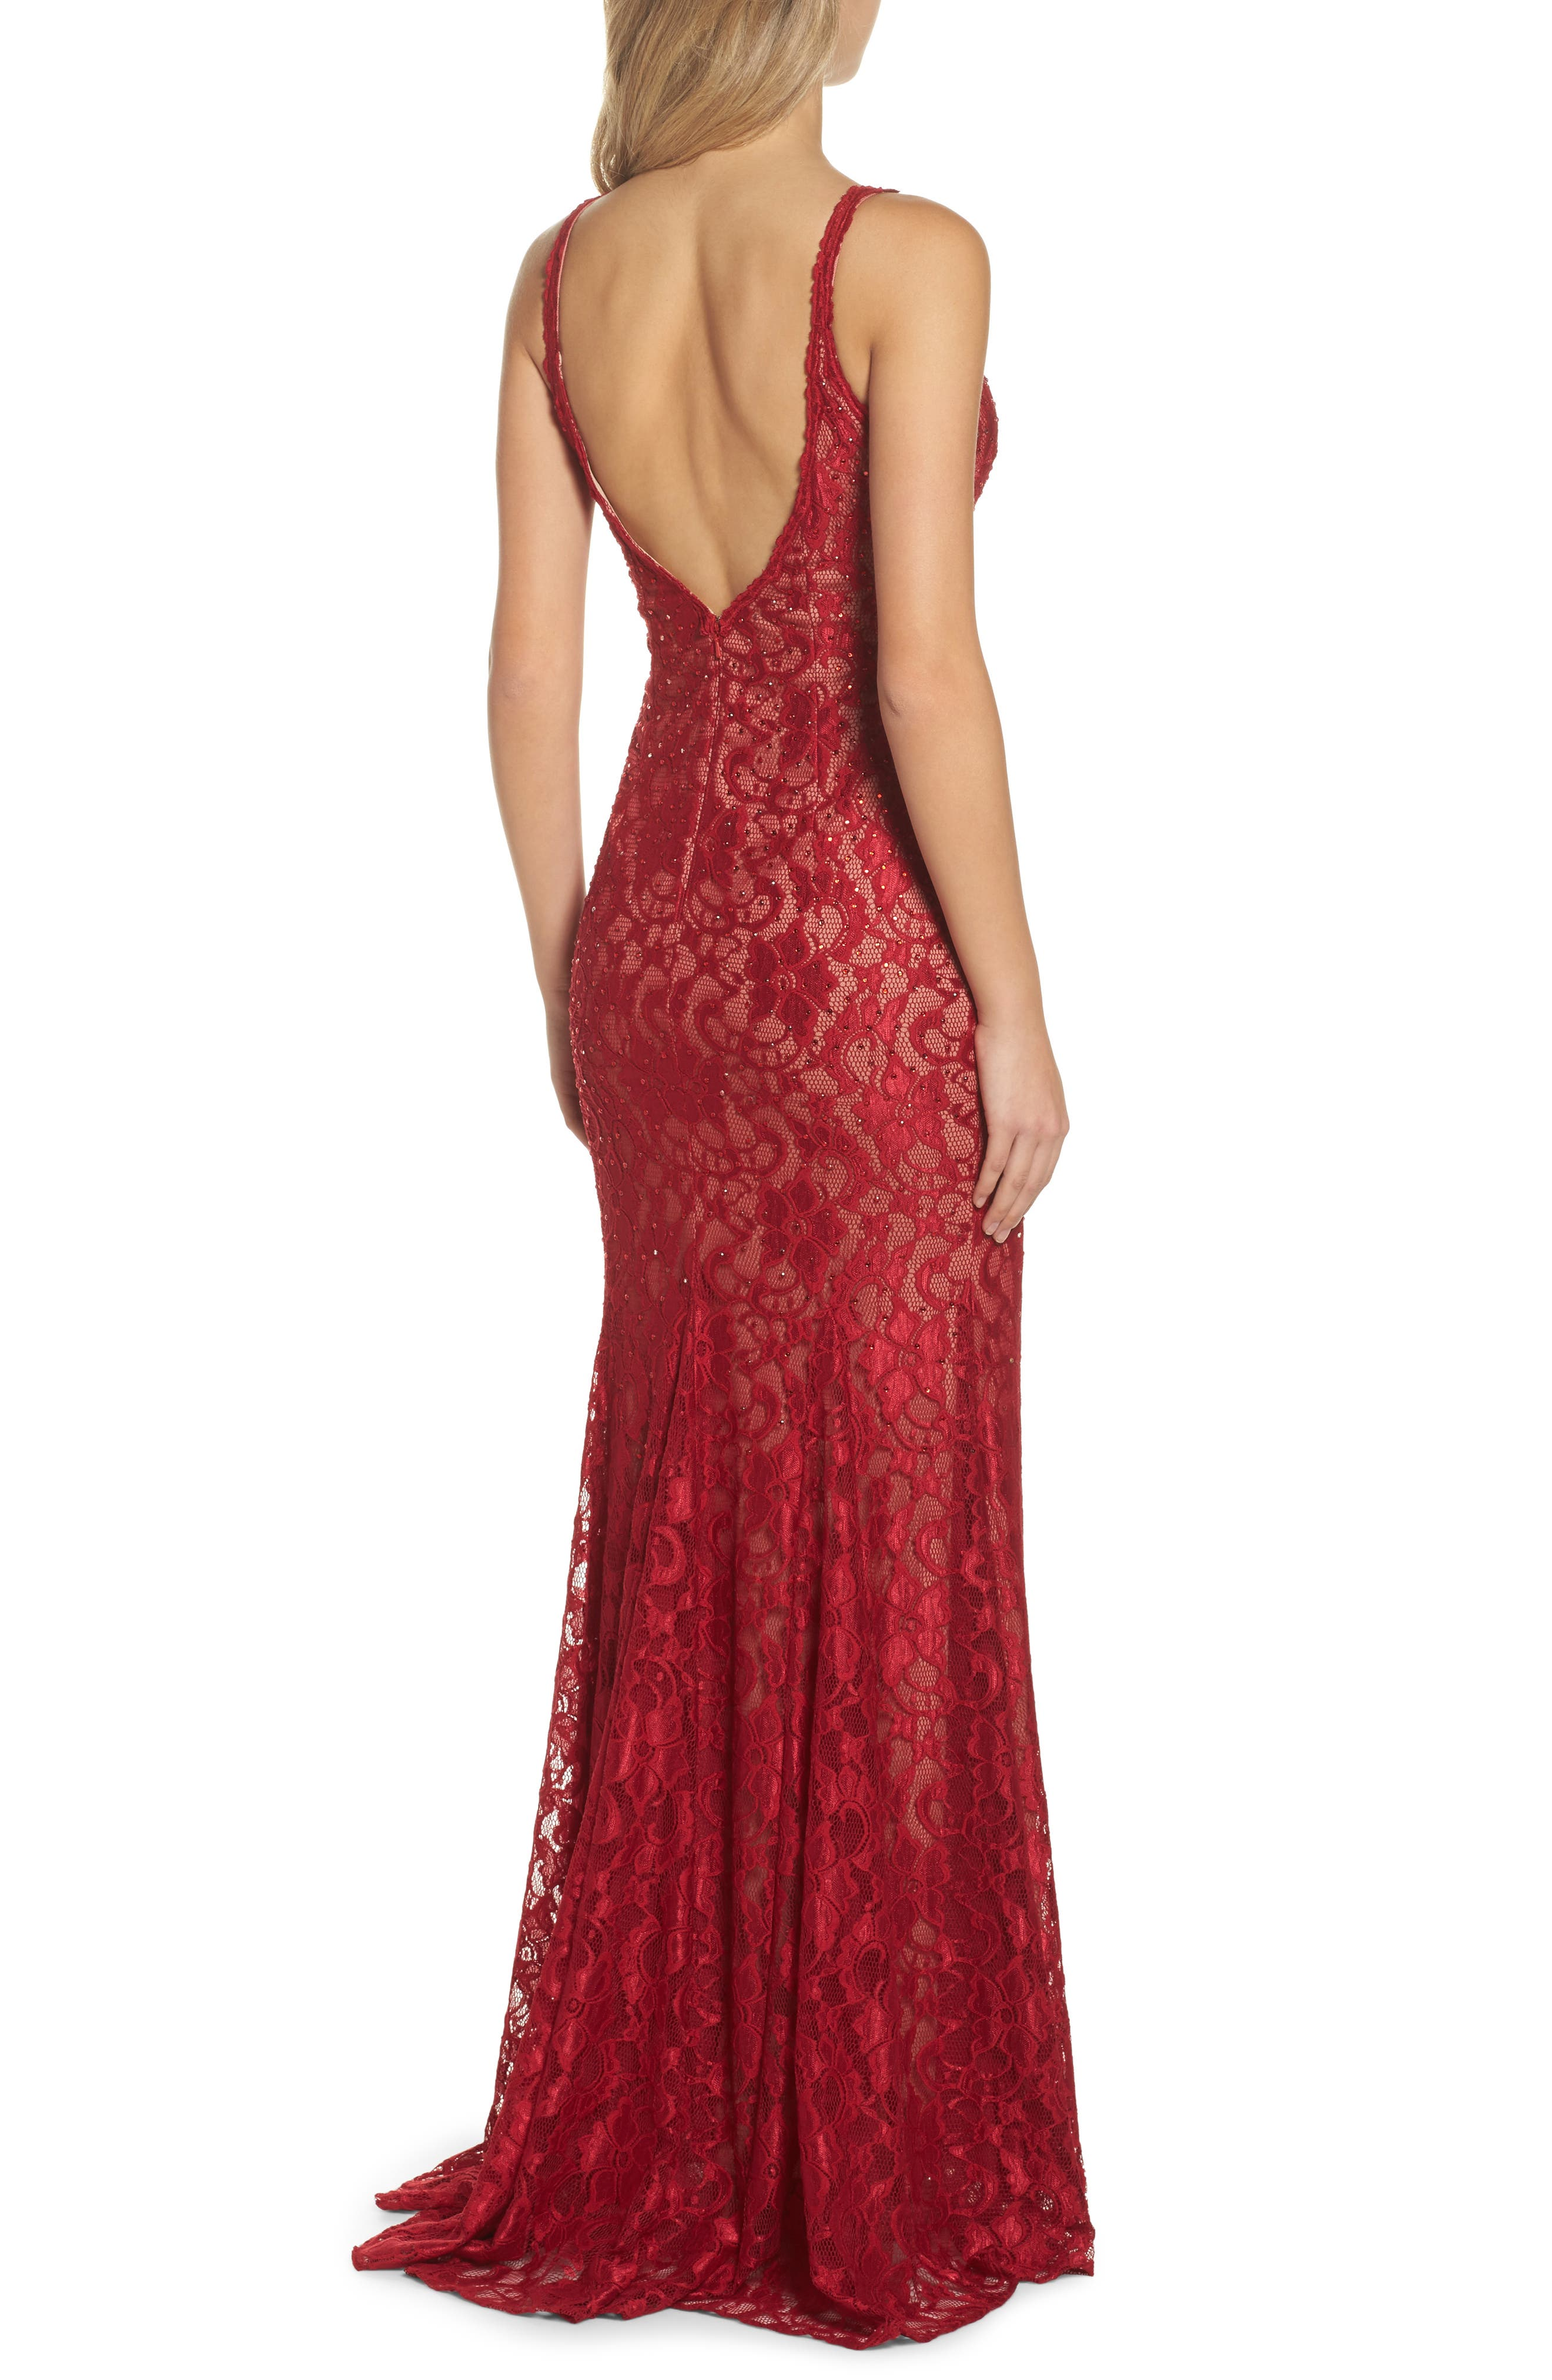 Plunging Beaded Lace Mermaid Gown,                             Alternate thumbnail 2, color,                             Red/ Tan